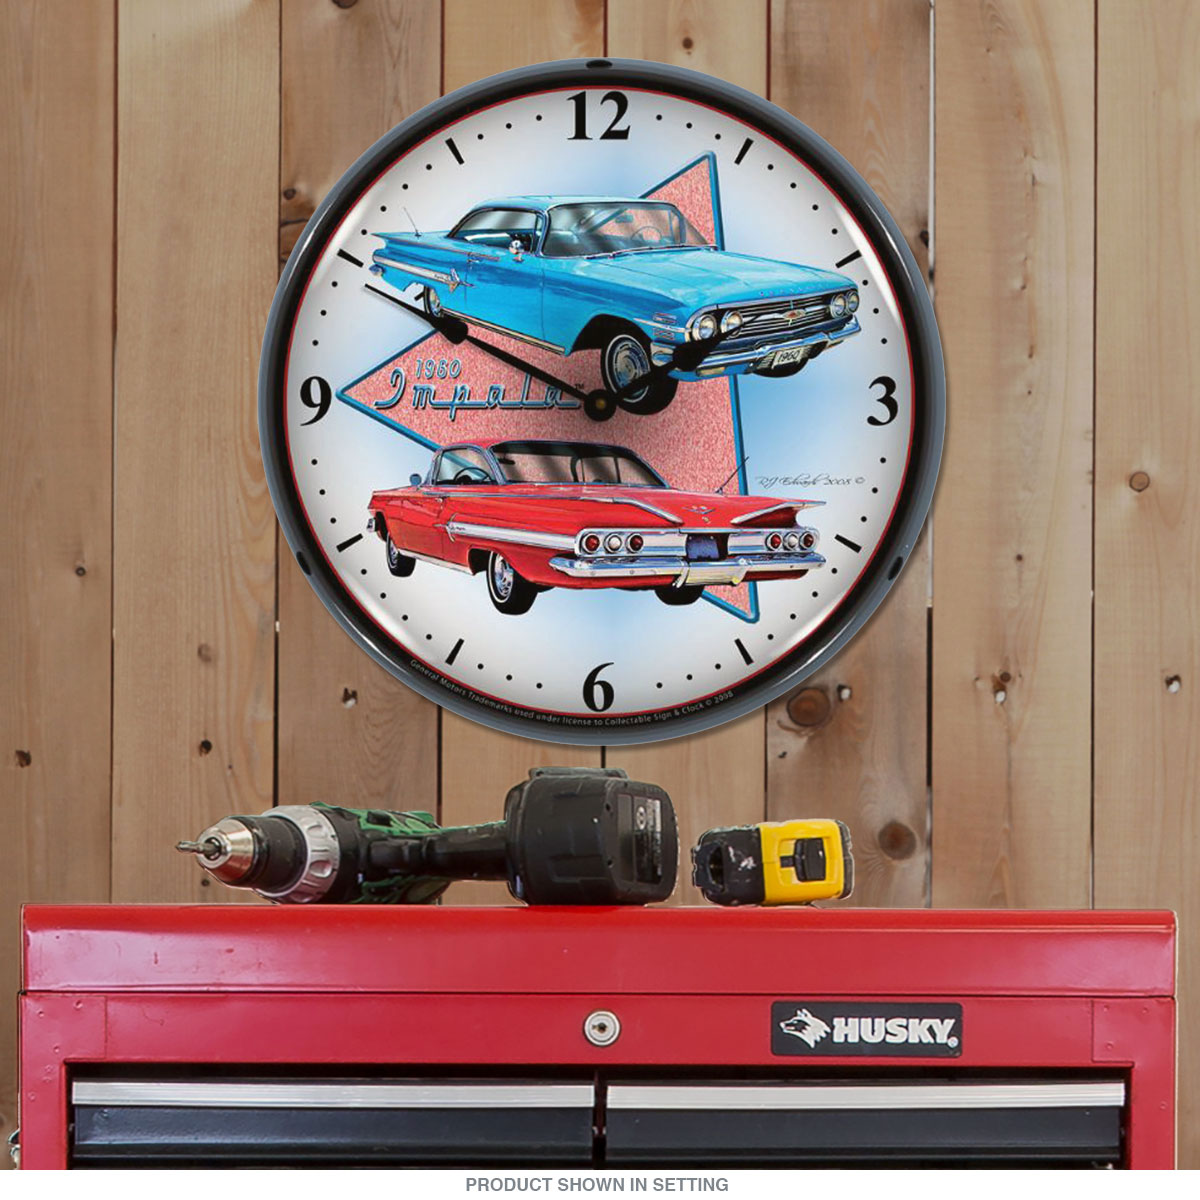 Chevrolet Impala Muscle Car Light Up Garage Clock